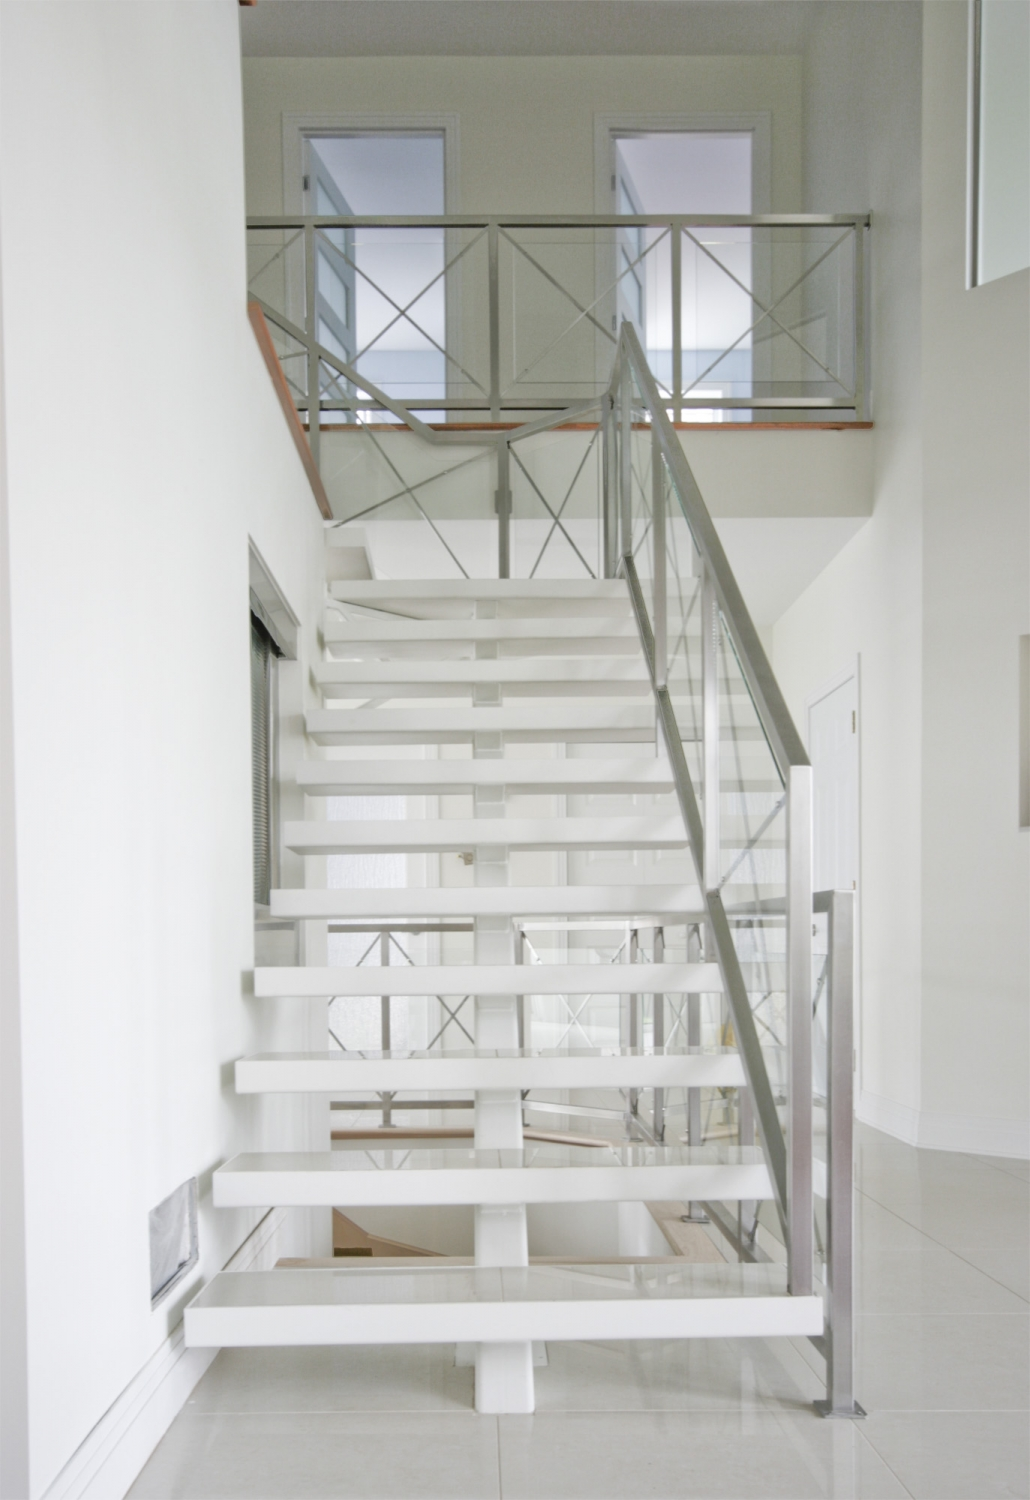 1000 images about escaliers on pinterest staircases. Black Bedroom Furniture Sets. Home Design Ideas